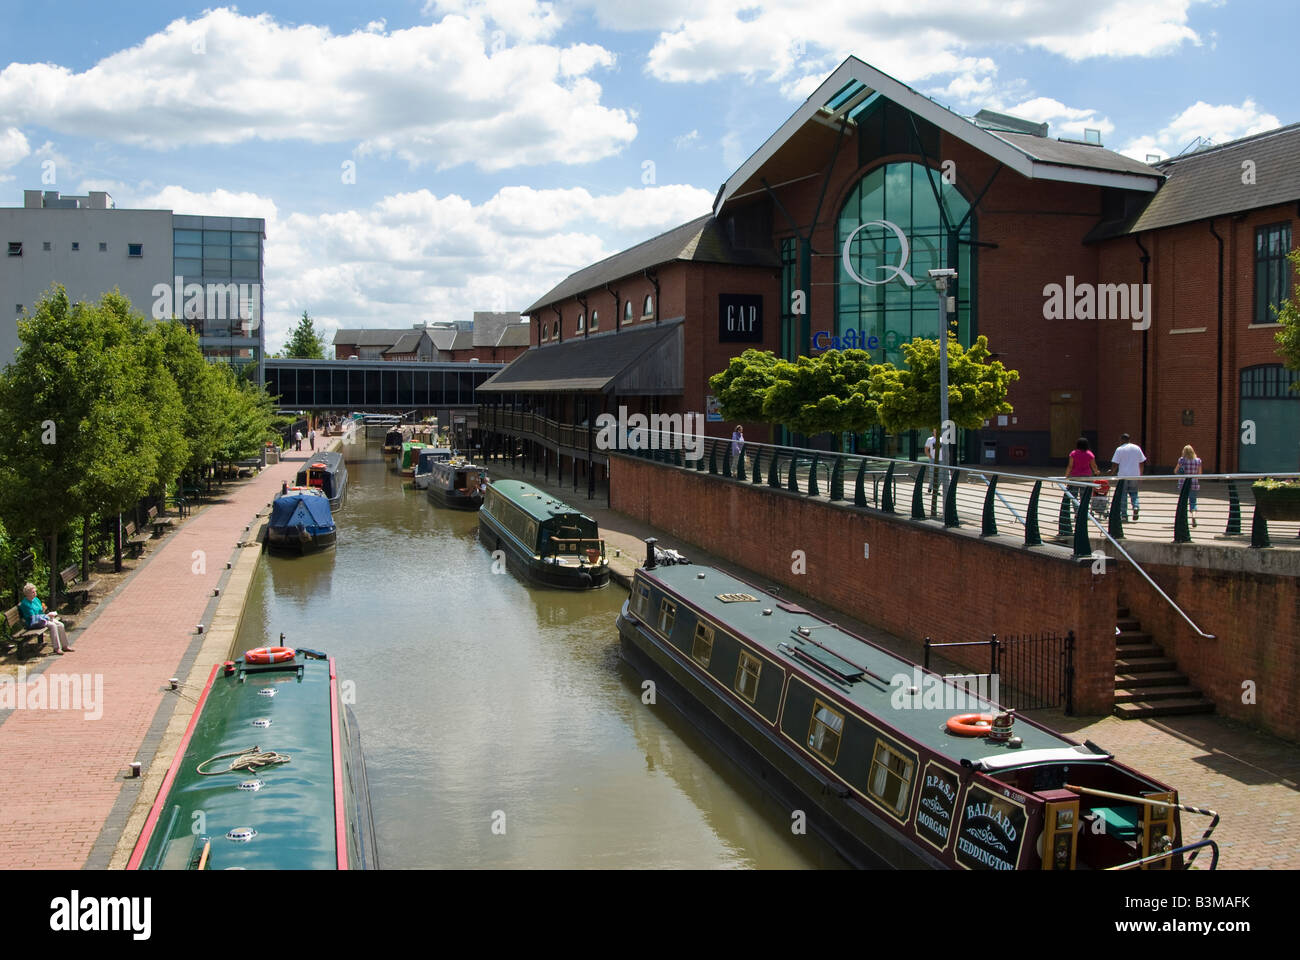 A view along the Oxford Canal at Castle Quays shopping centre, Banbury, Oxfordshire, UK. - Stock Image